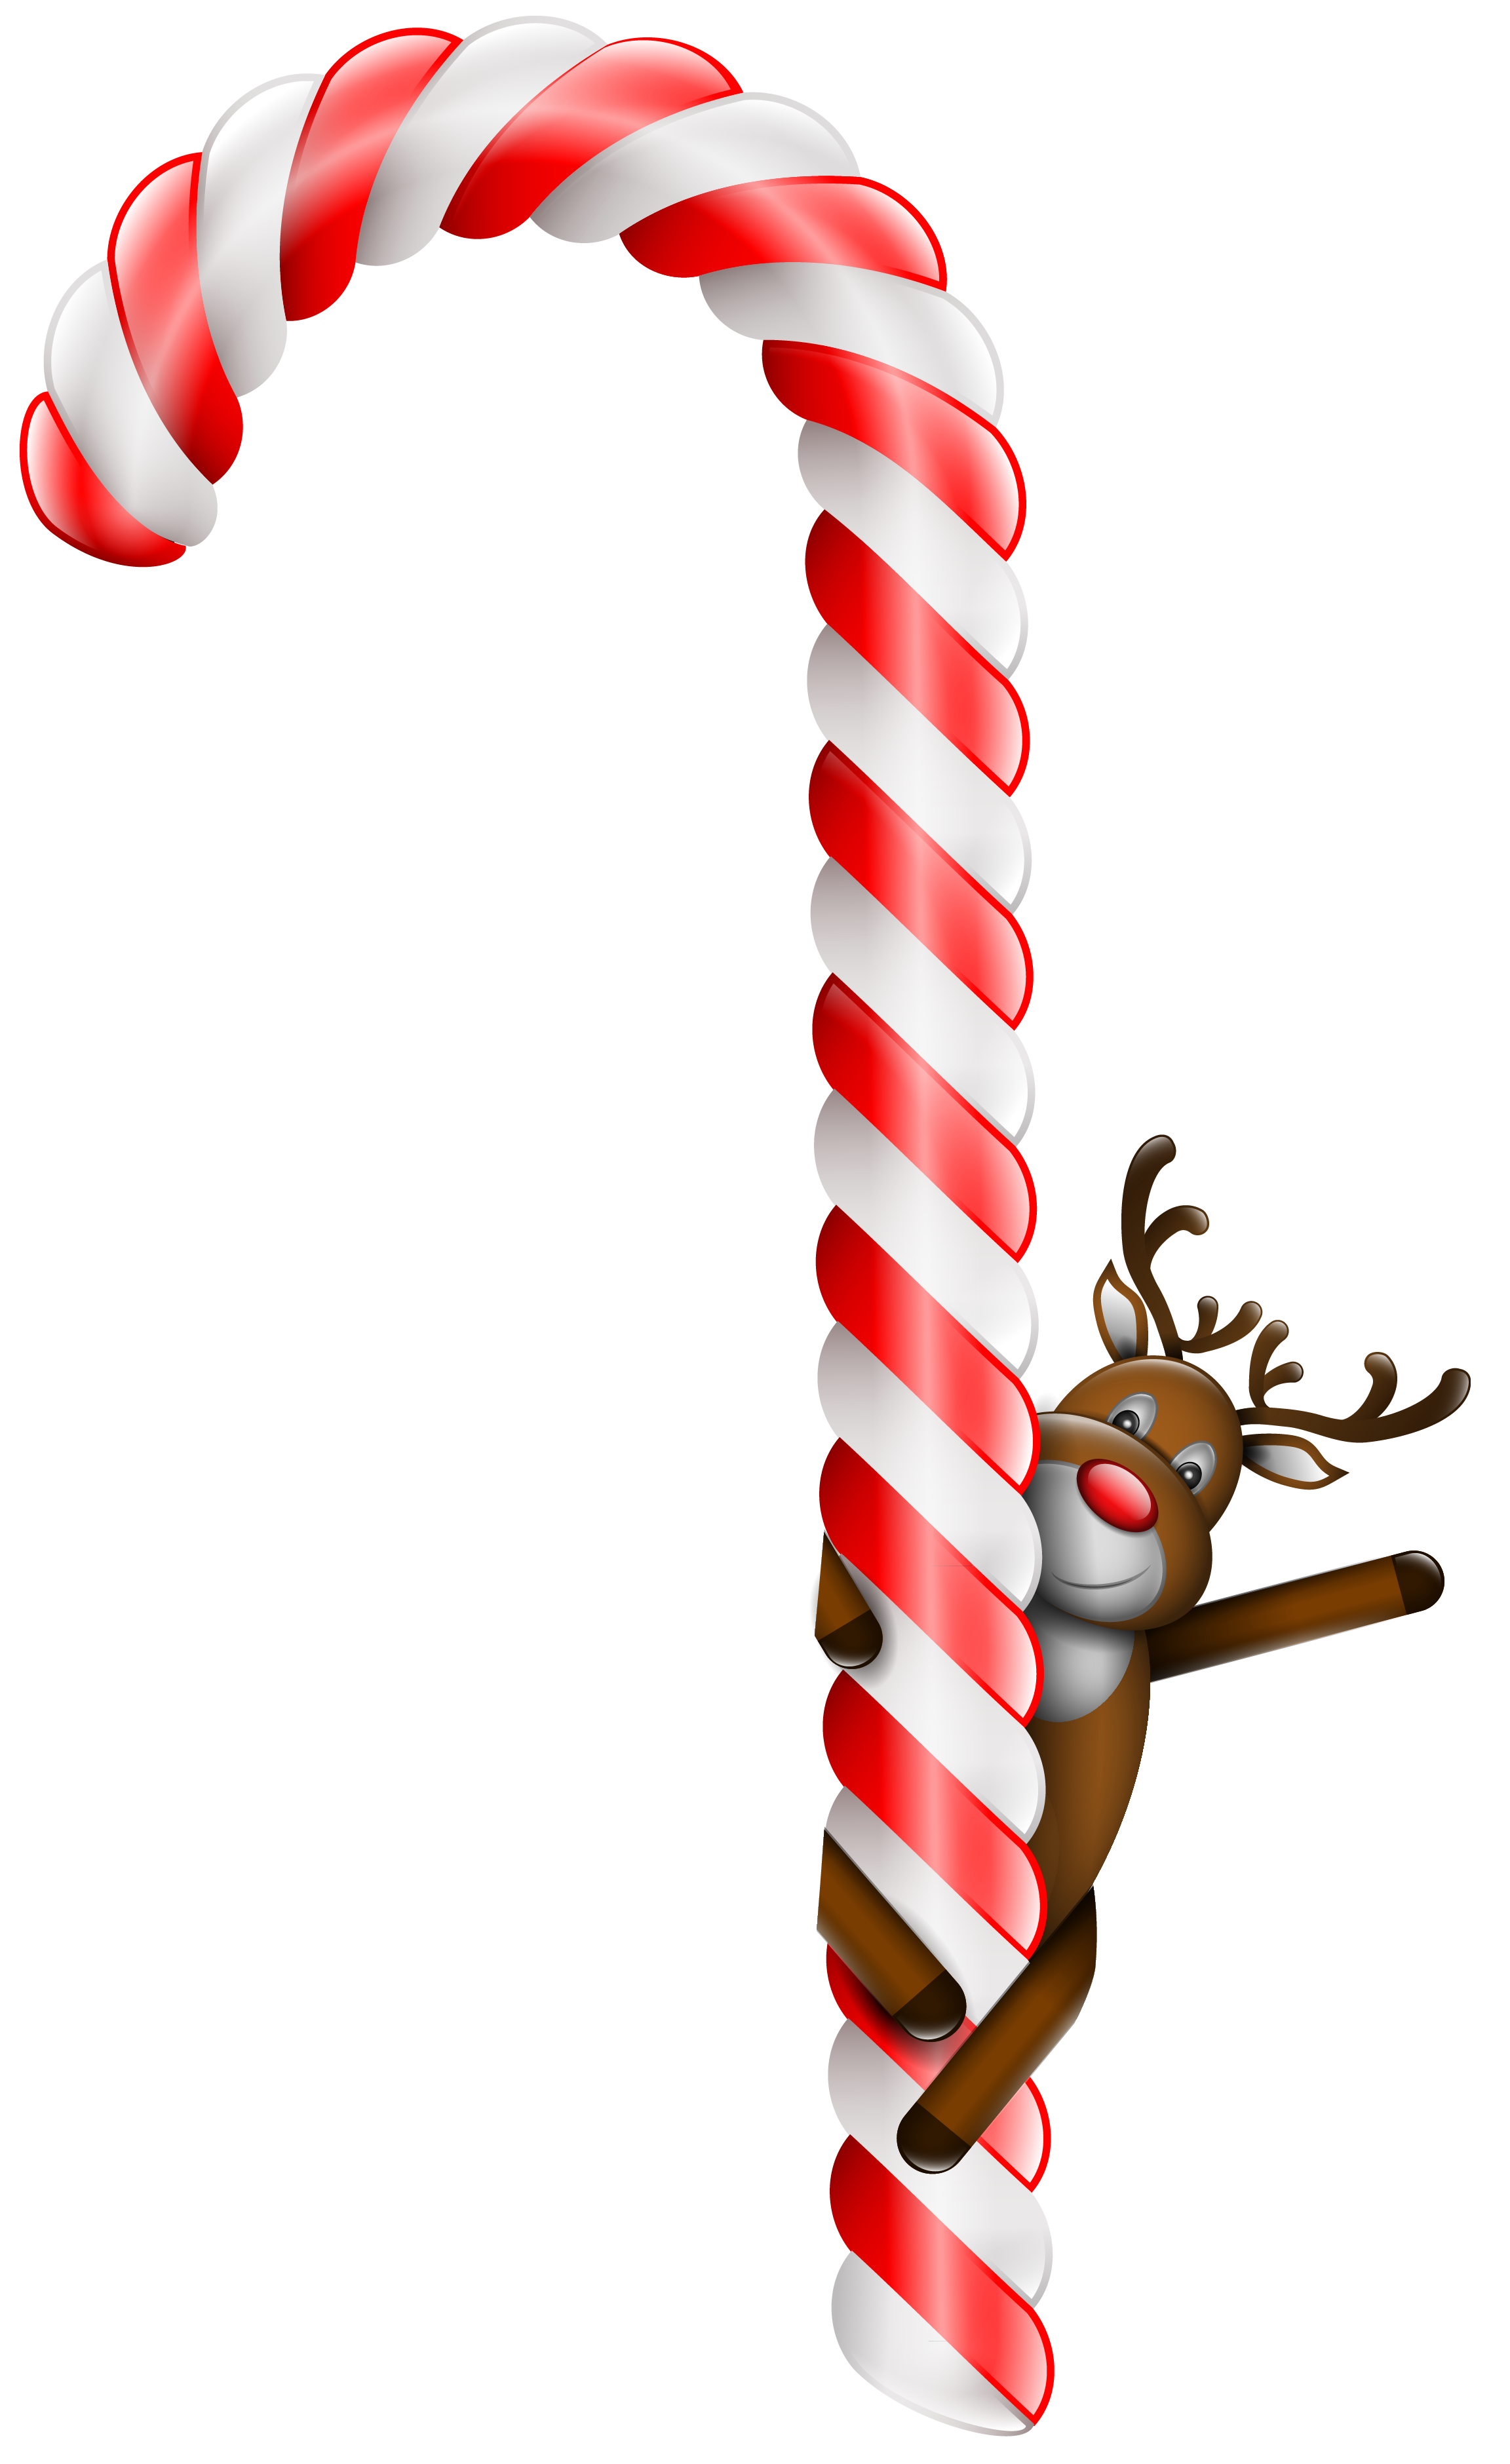 Candy cane transparent.